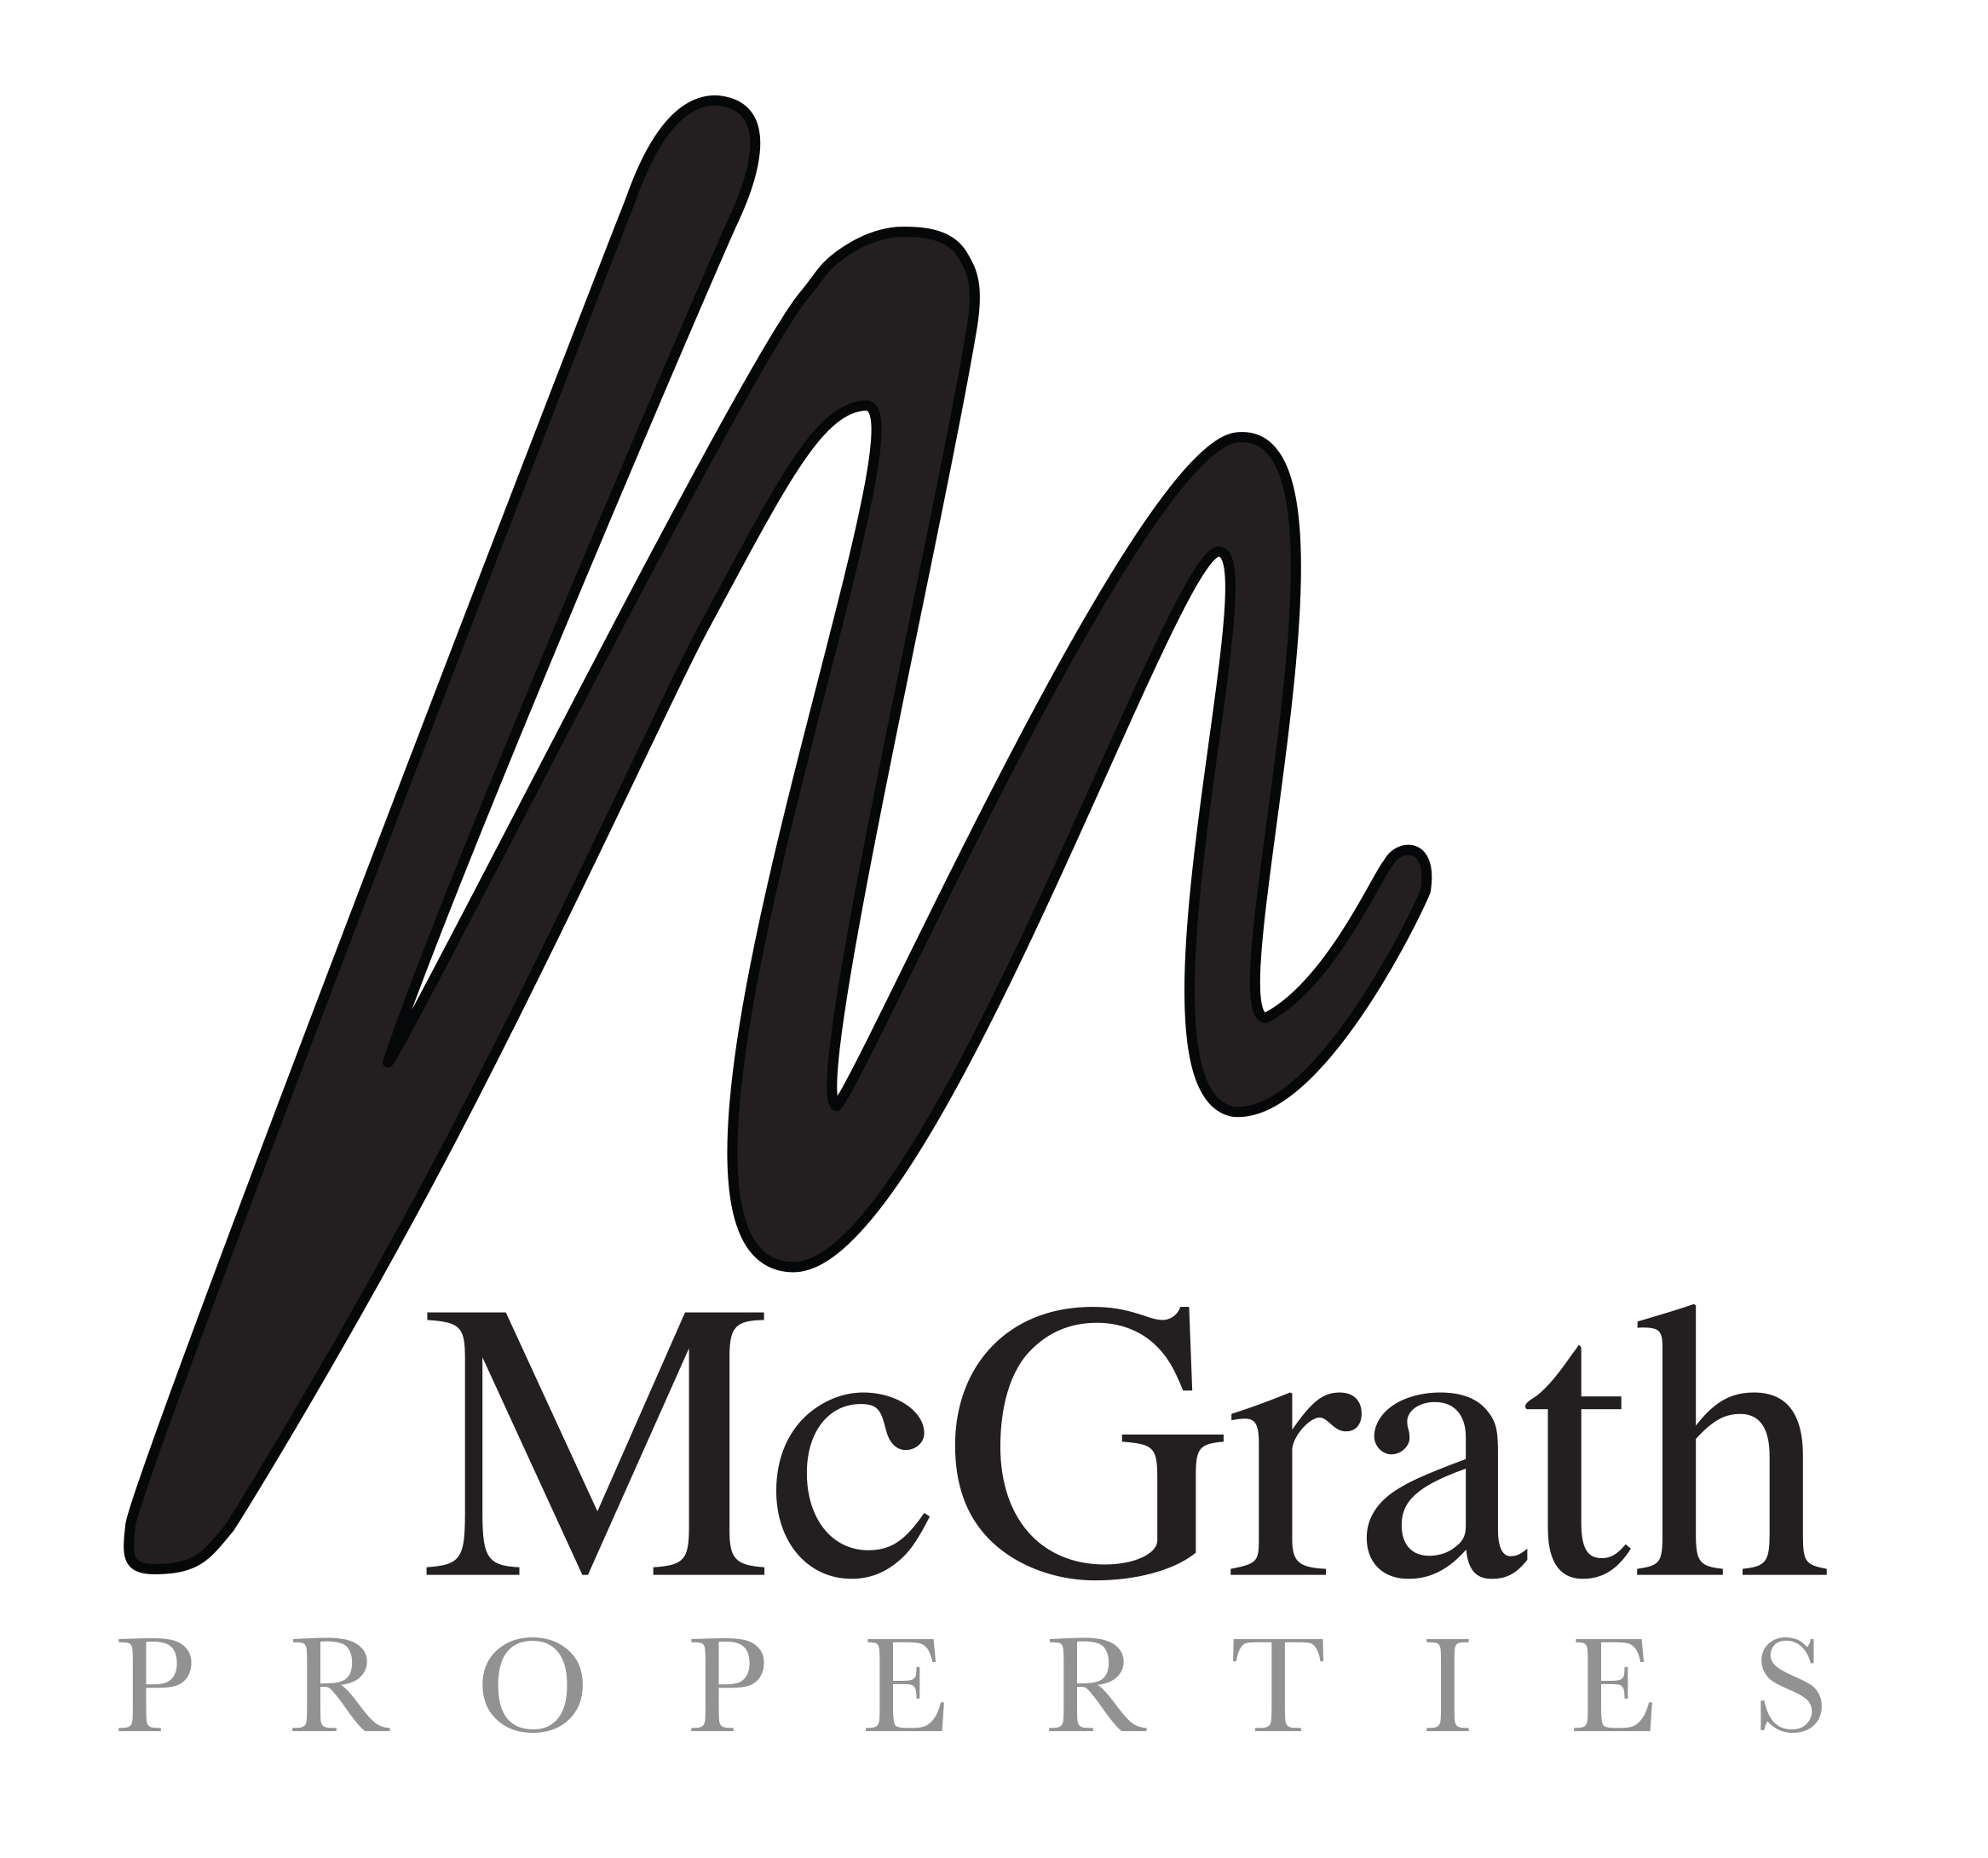 McGrath Properties